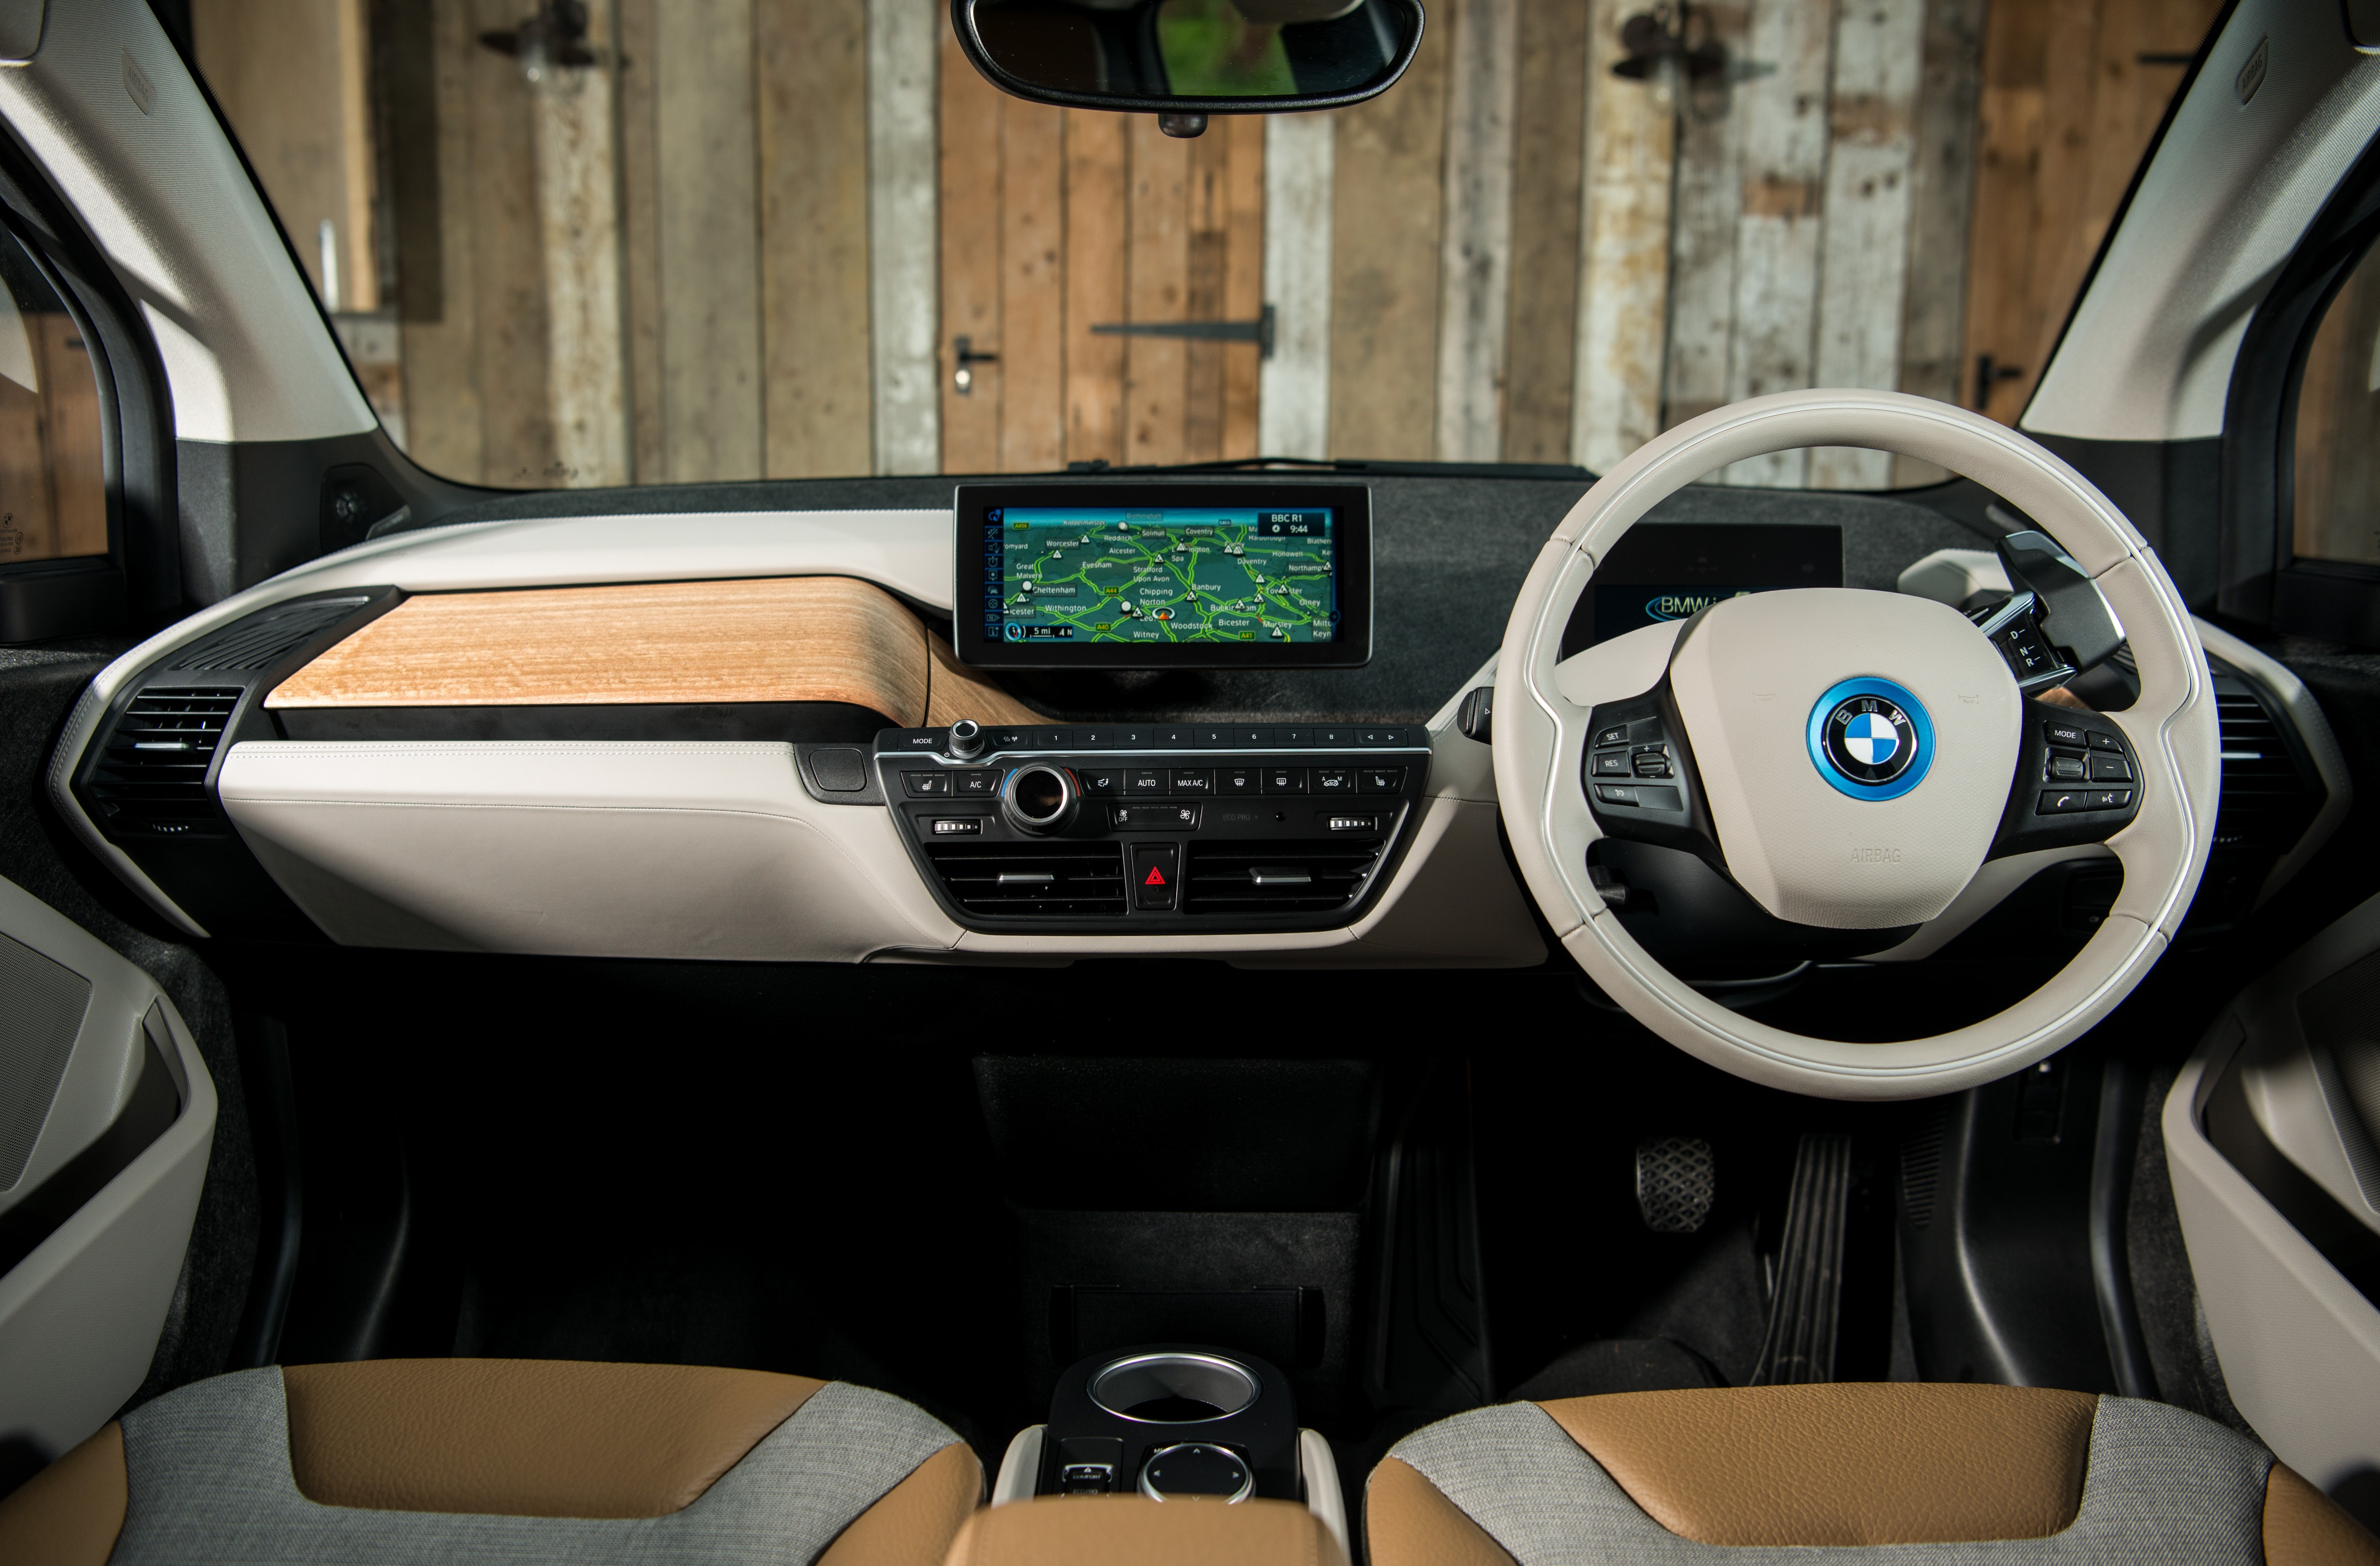 Delightful BMW I3 Interior And Infotainment | Carwow